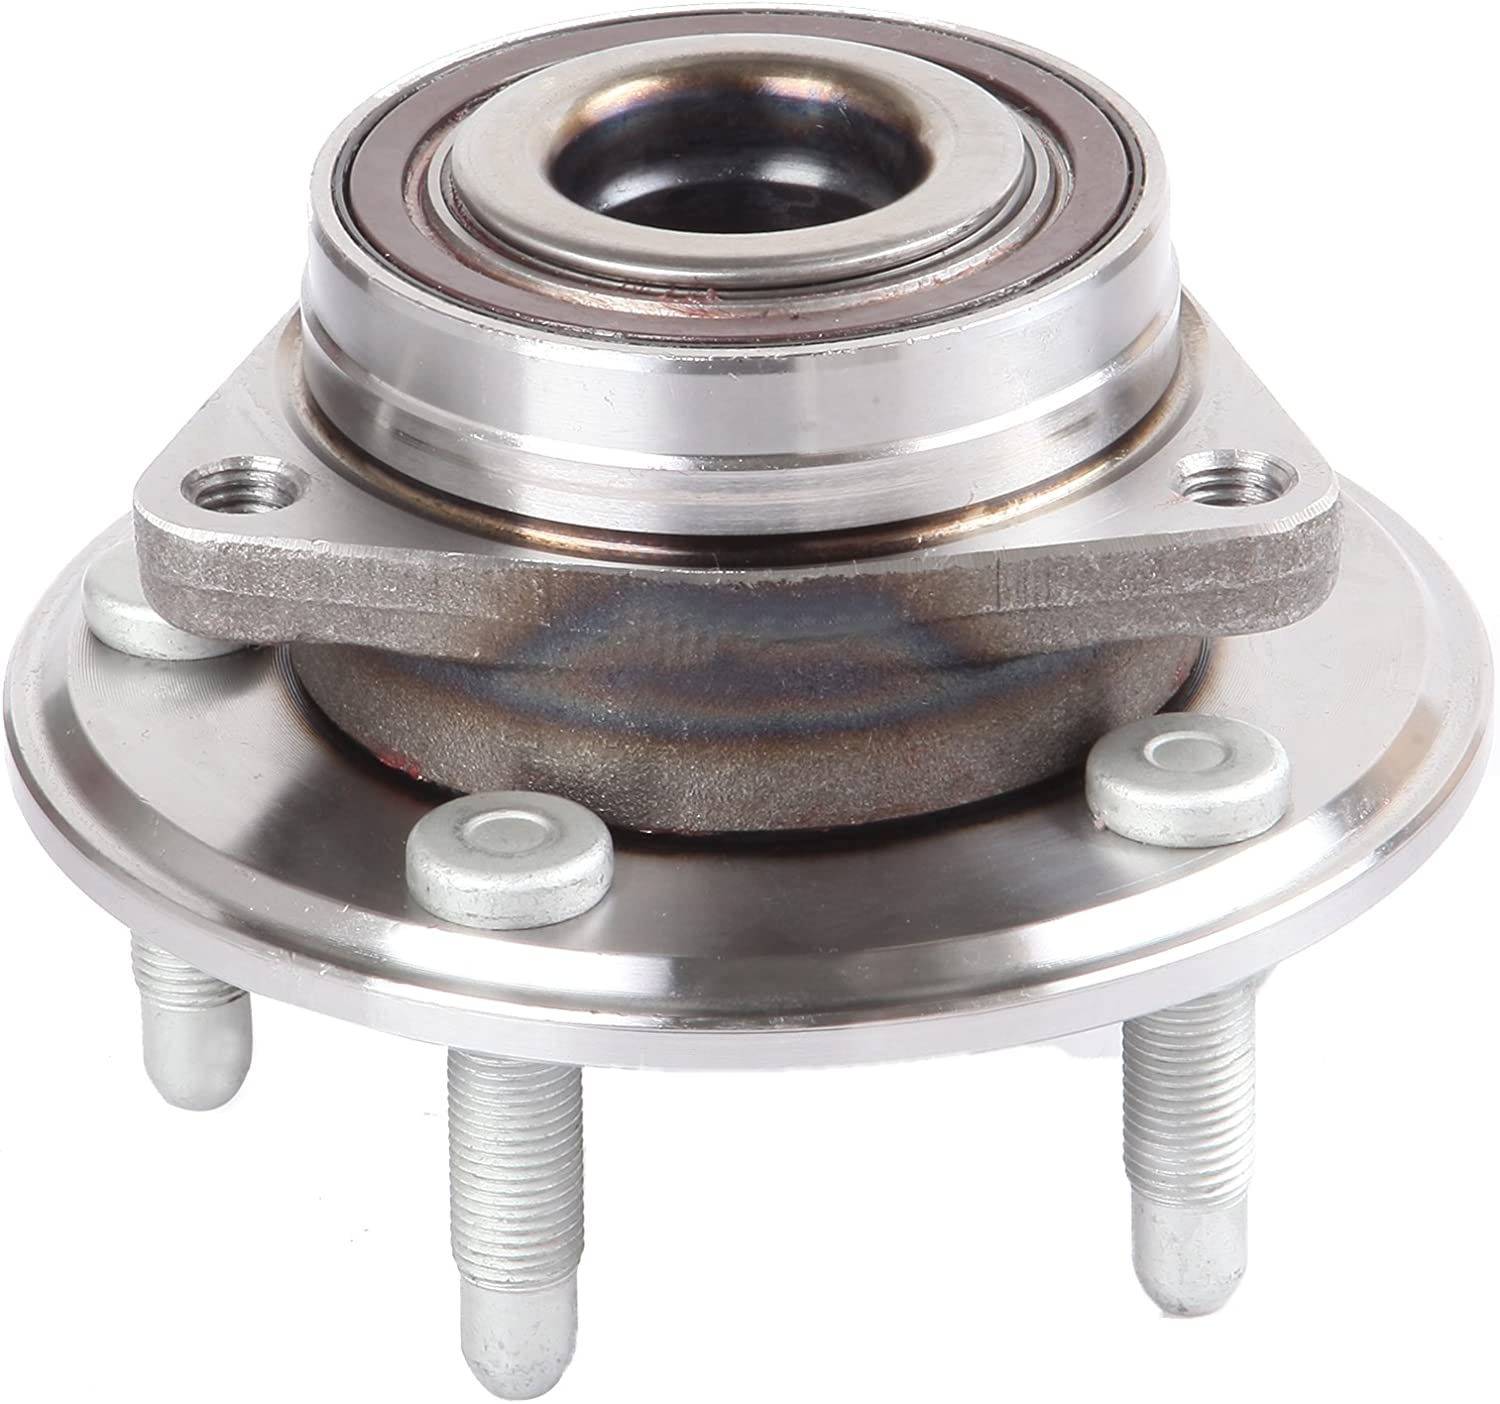 Amazon Com Eccpp 513282 Replacement For Wheel Bearing And Hub